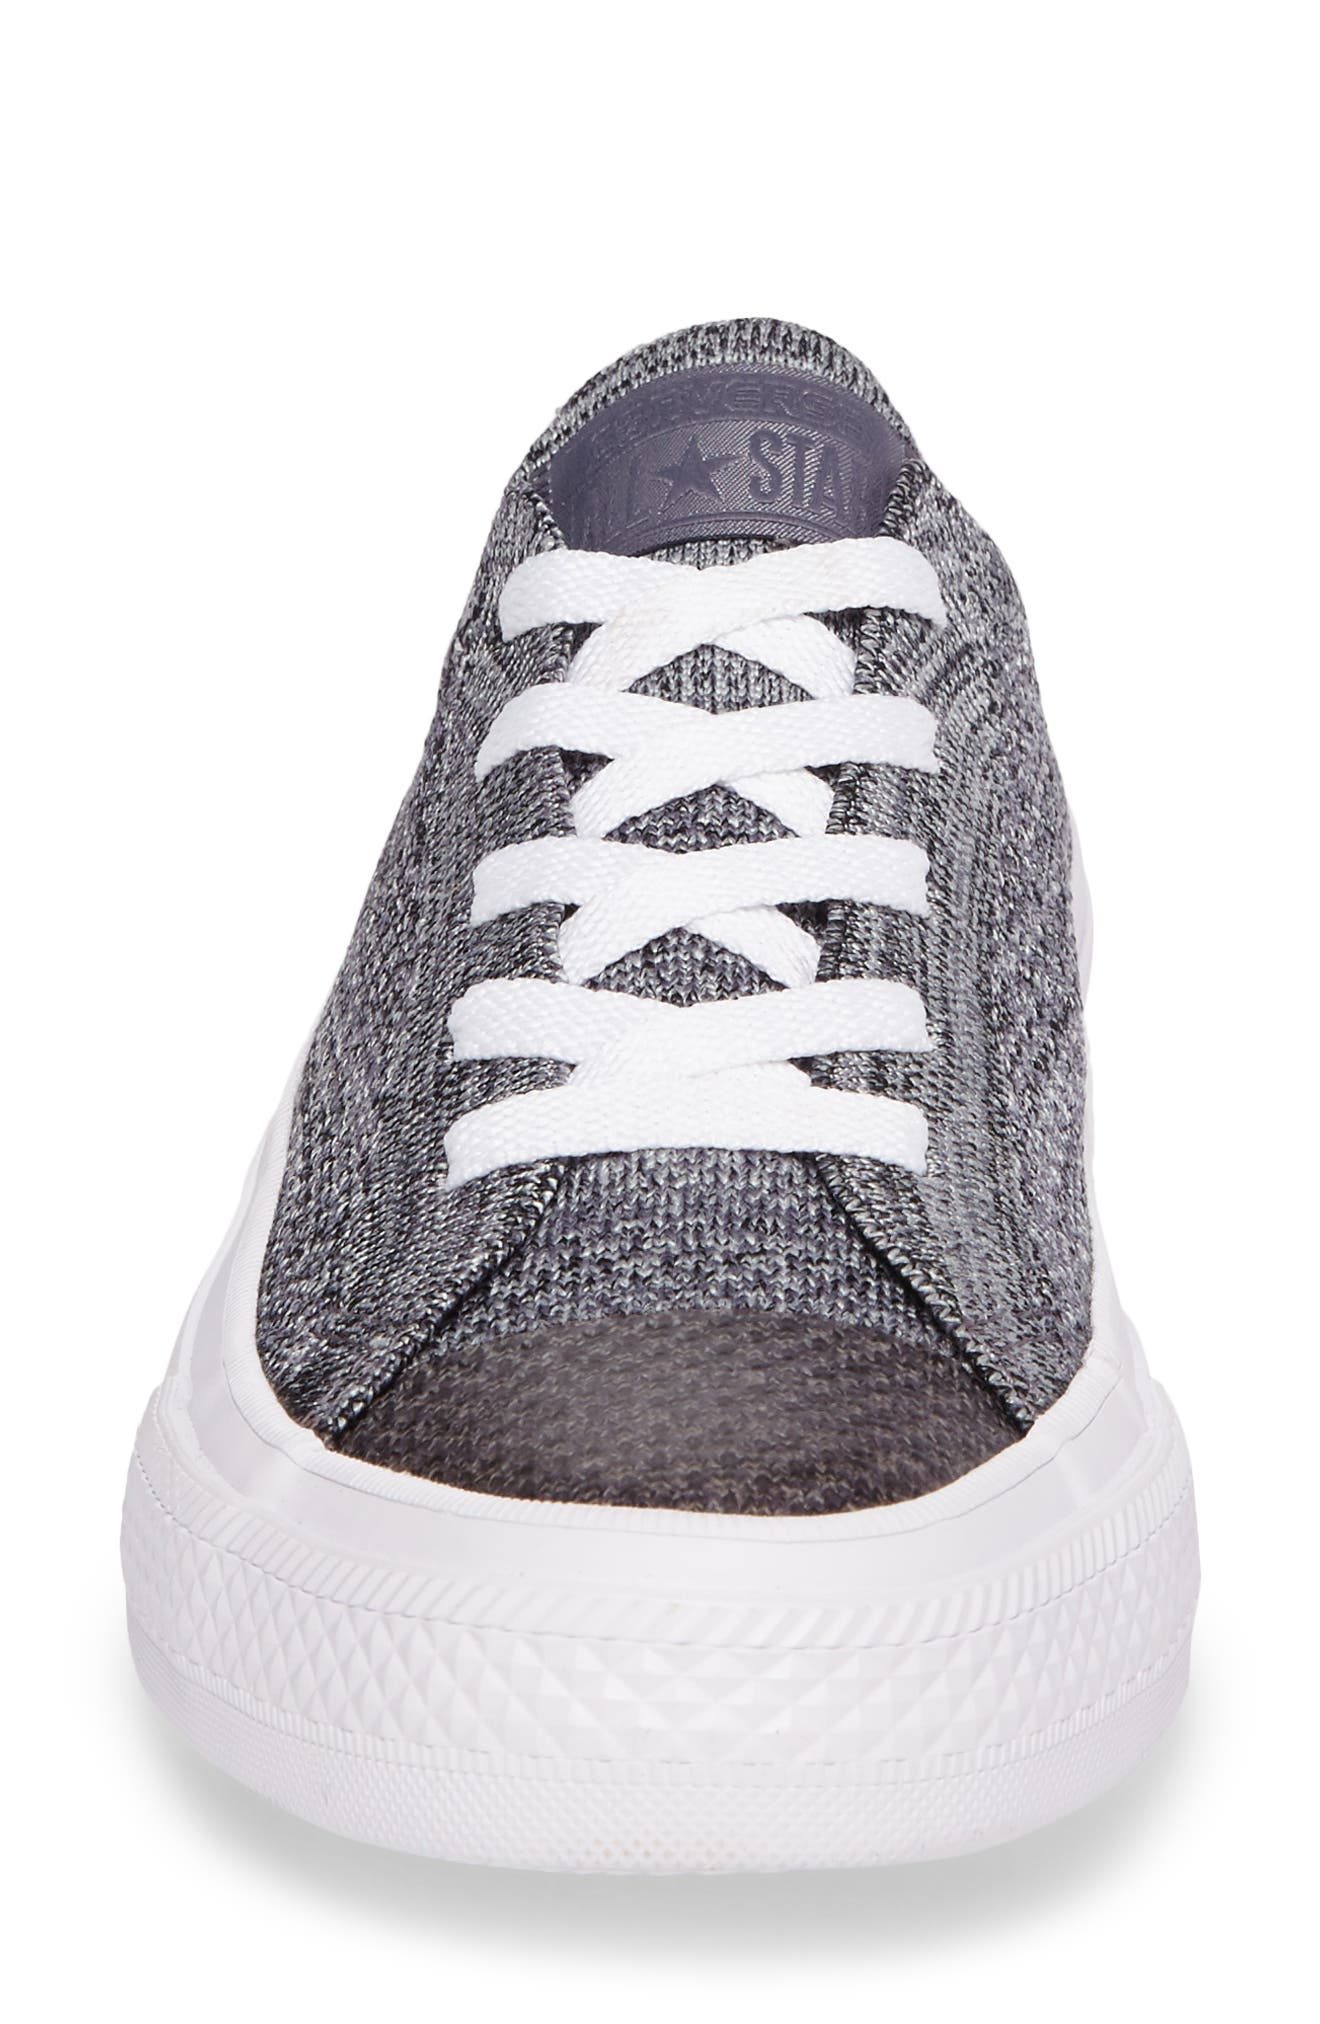 All Star<sup>®</sup> Flyknit Low Sneaker,                             Alternate thumbnail 4, color,                             Thunder Flyknit